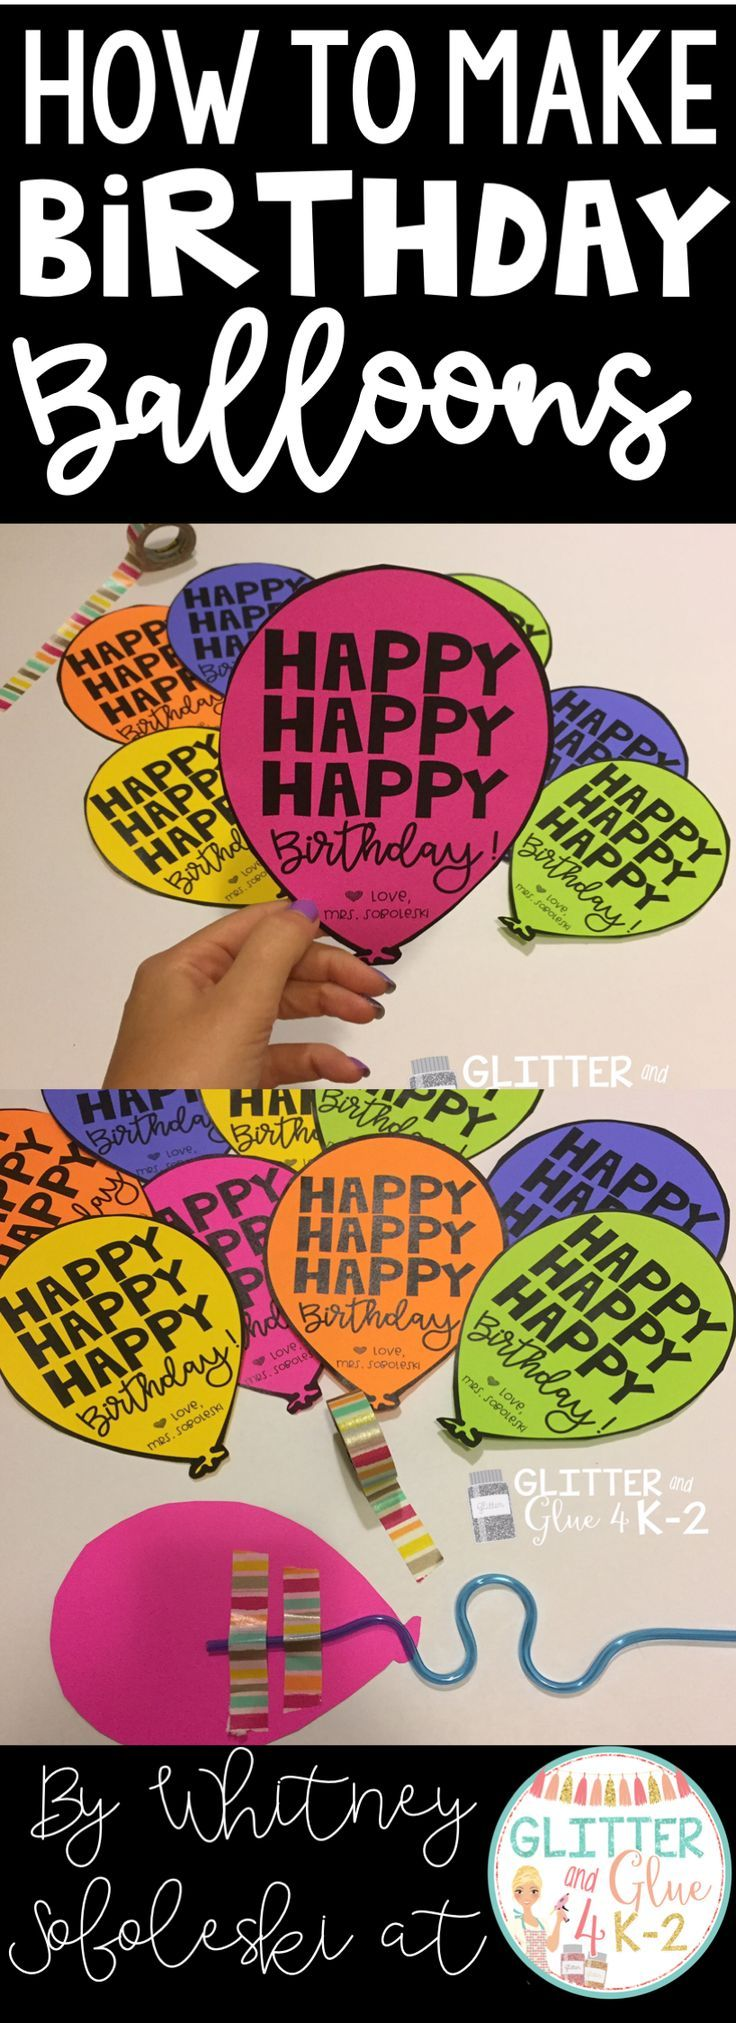 Fun and easy to create gifts for students! Birthday balloons! Just add a krazy straw!  Keywords: birthday gifts, student gifts, elementary teachers, student birthdays, birthdays at school, teachers, birthday balloons